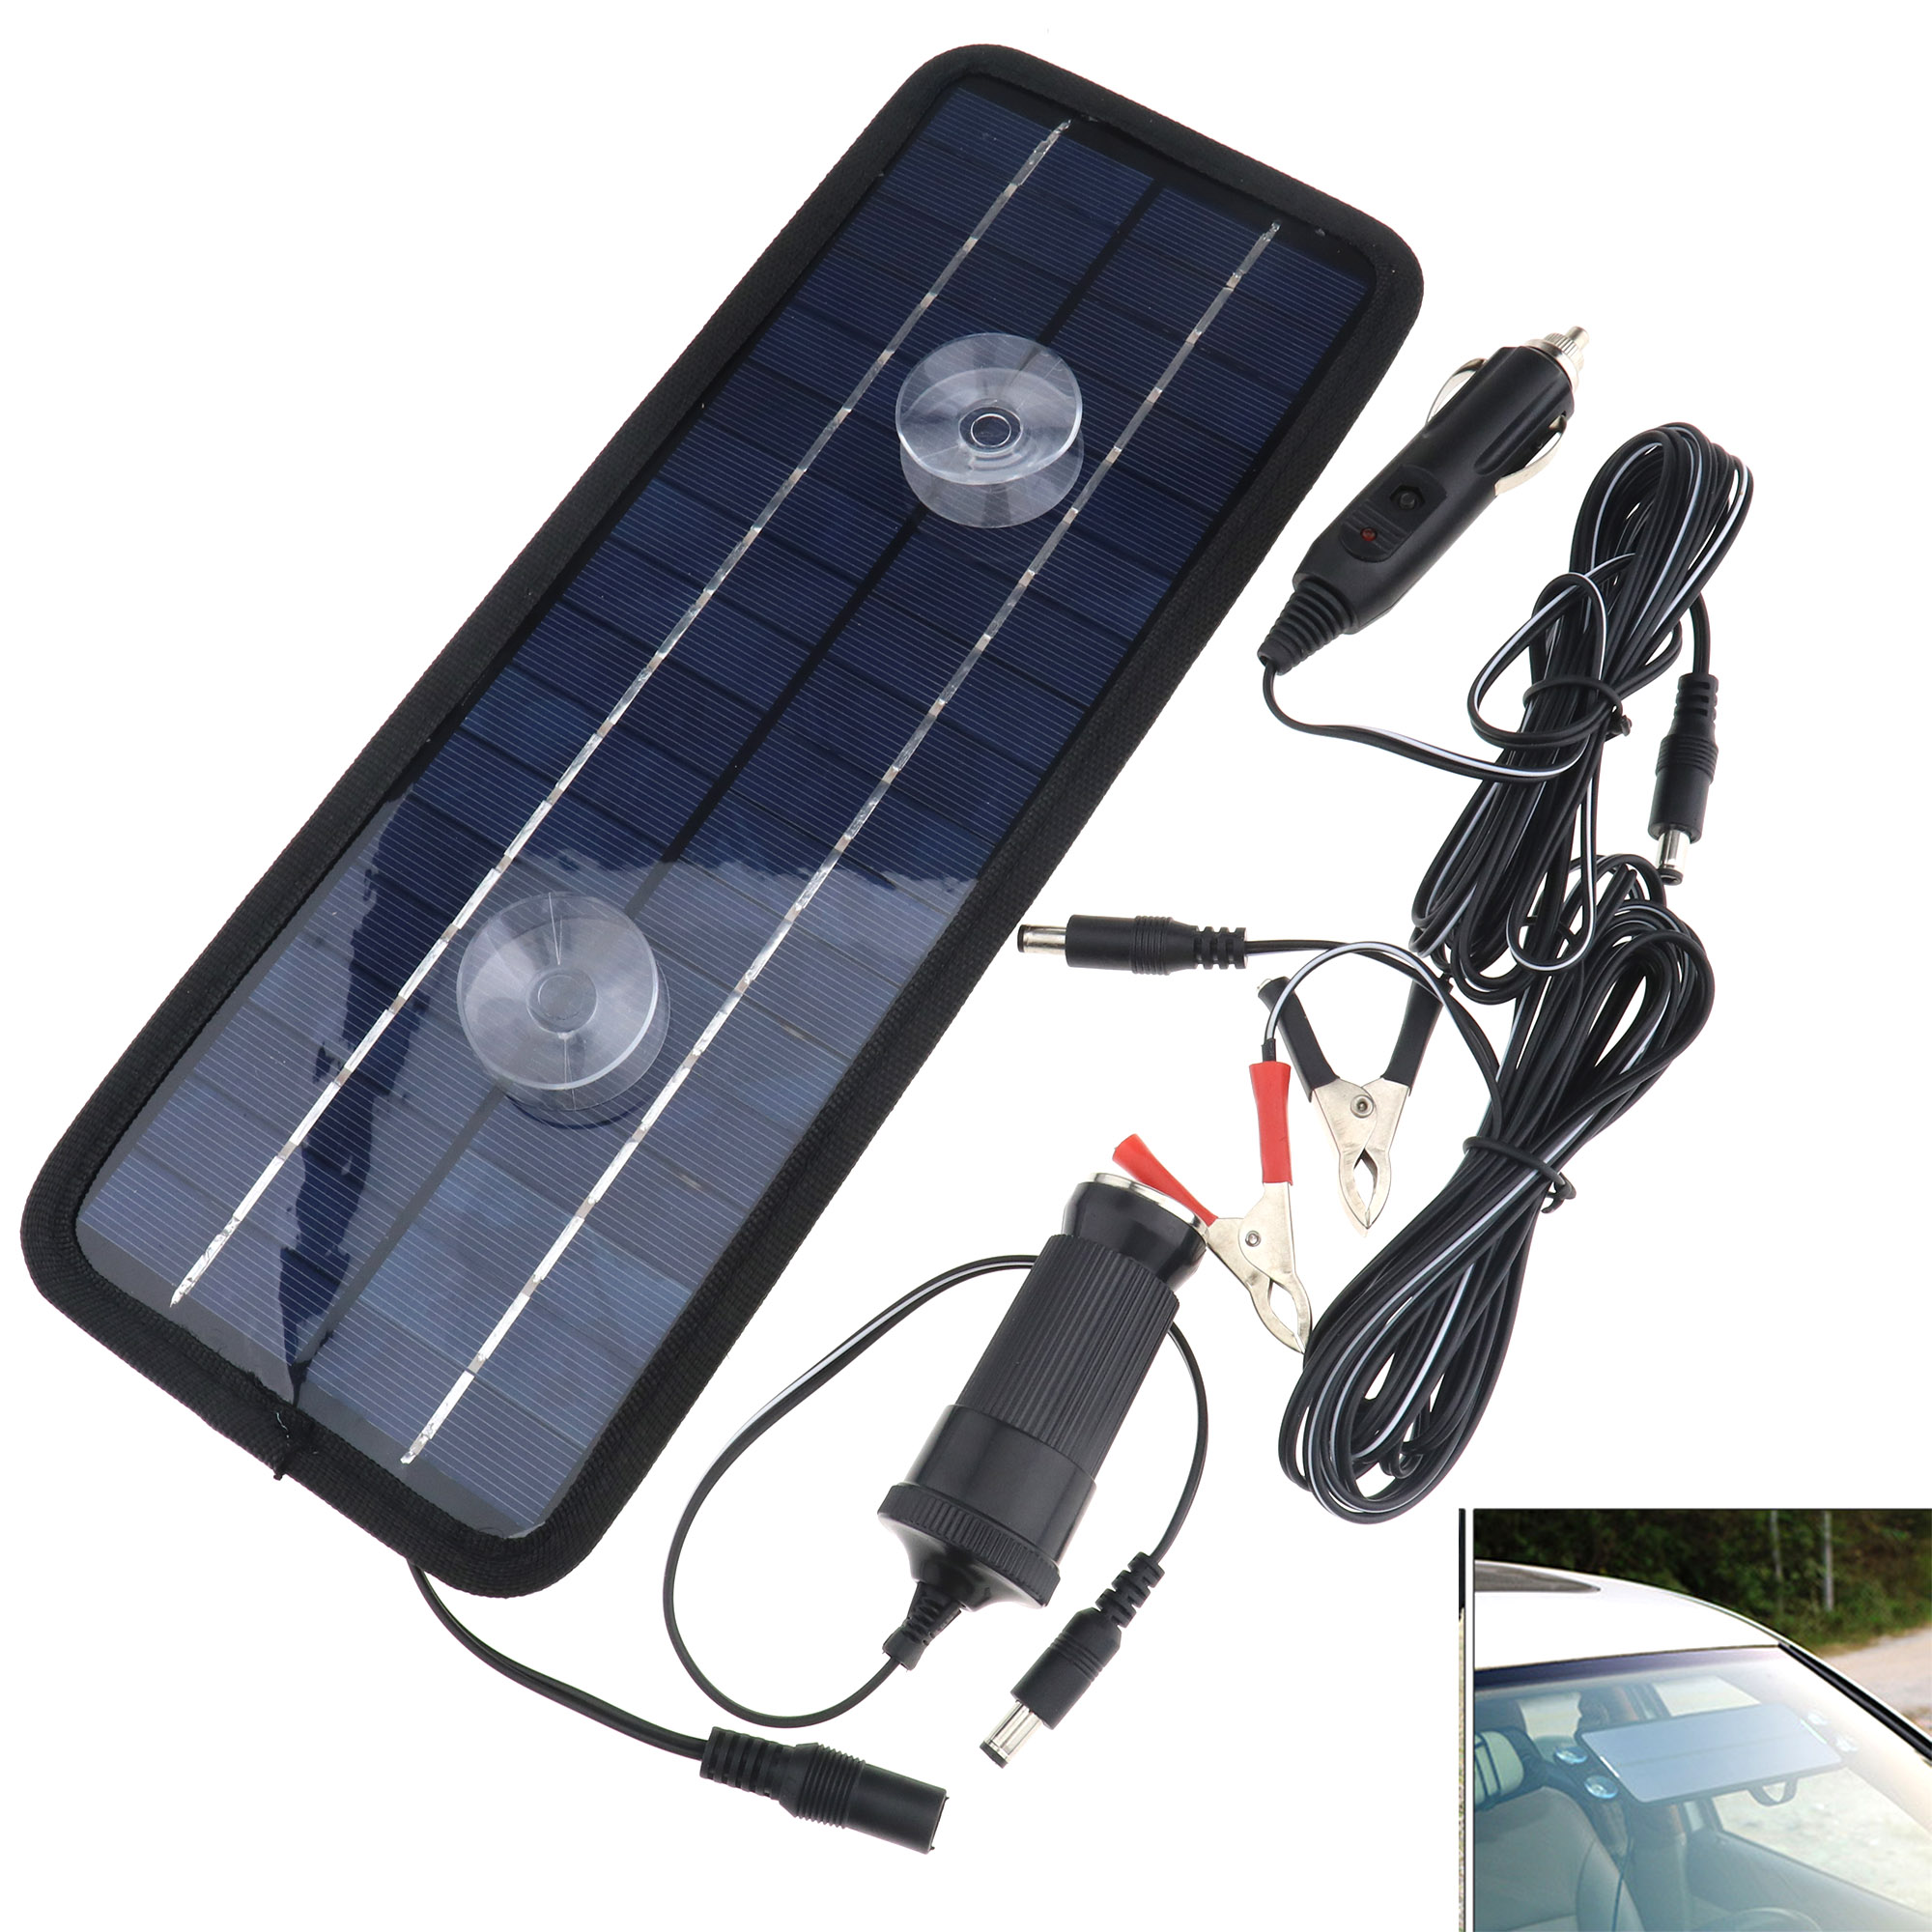 Batterie Megane 1 Genuine Unipart Car Battery Renault Scenic Fuse Box Lid Removal Courtesy Door Interior Light Switch For Kangoo Clio Ebay